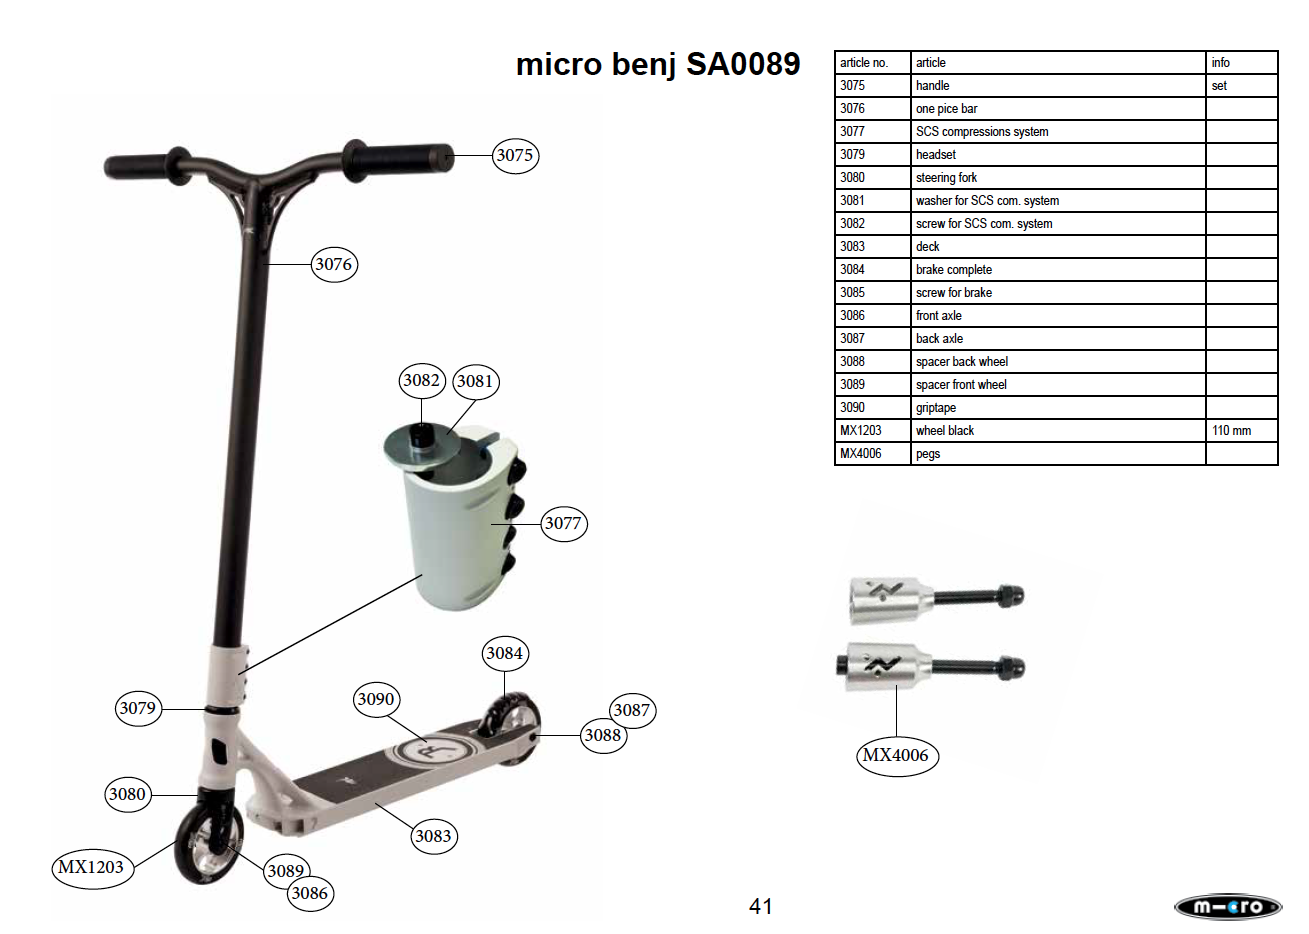 Micro - front axle (3086)